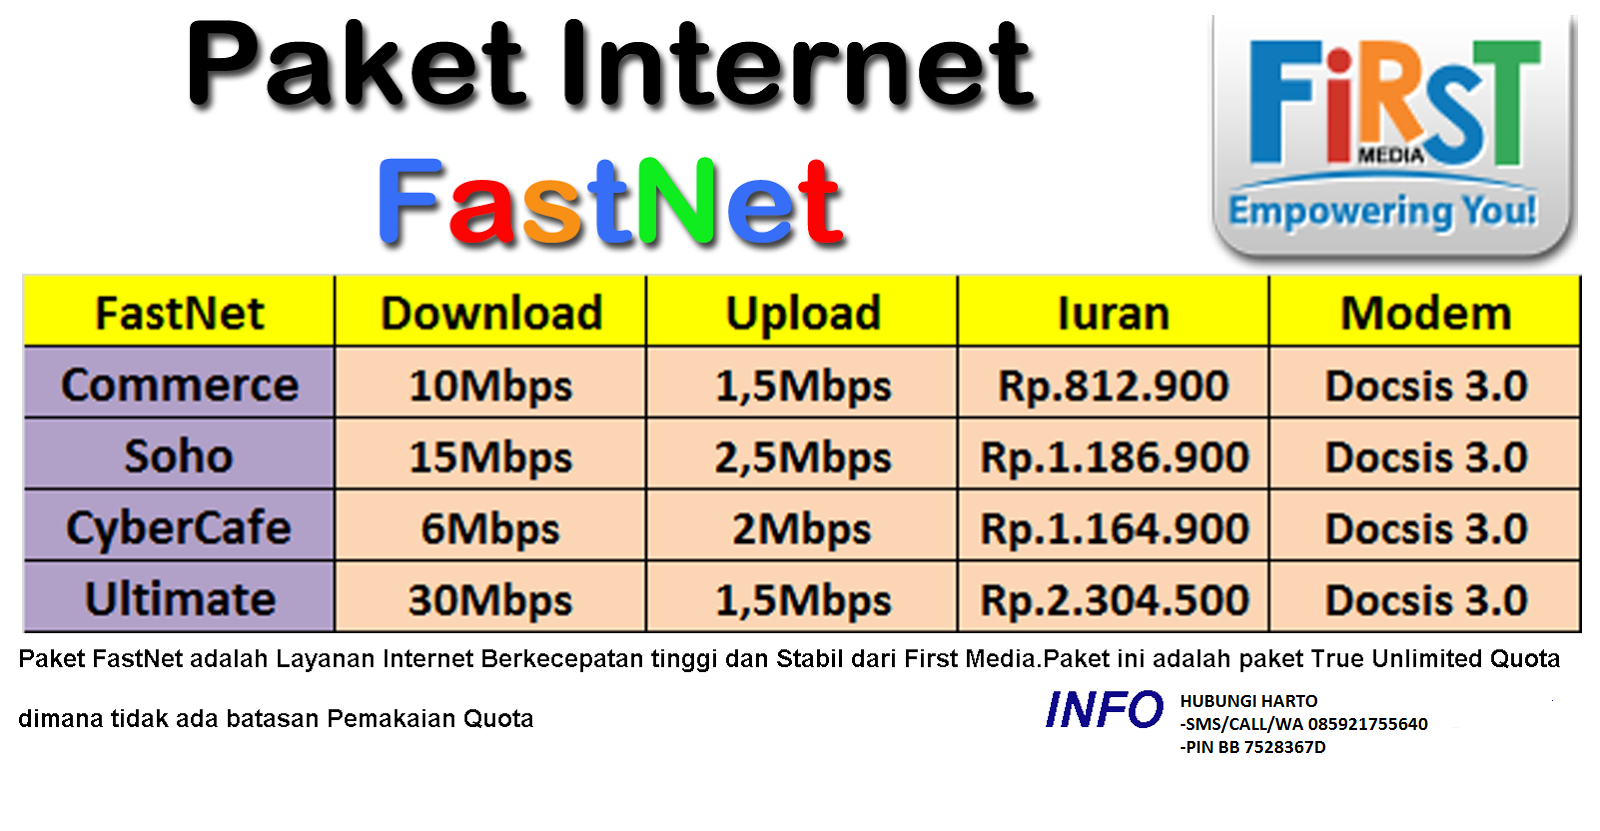 Image Result For Paket Internet Fastneta